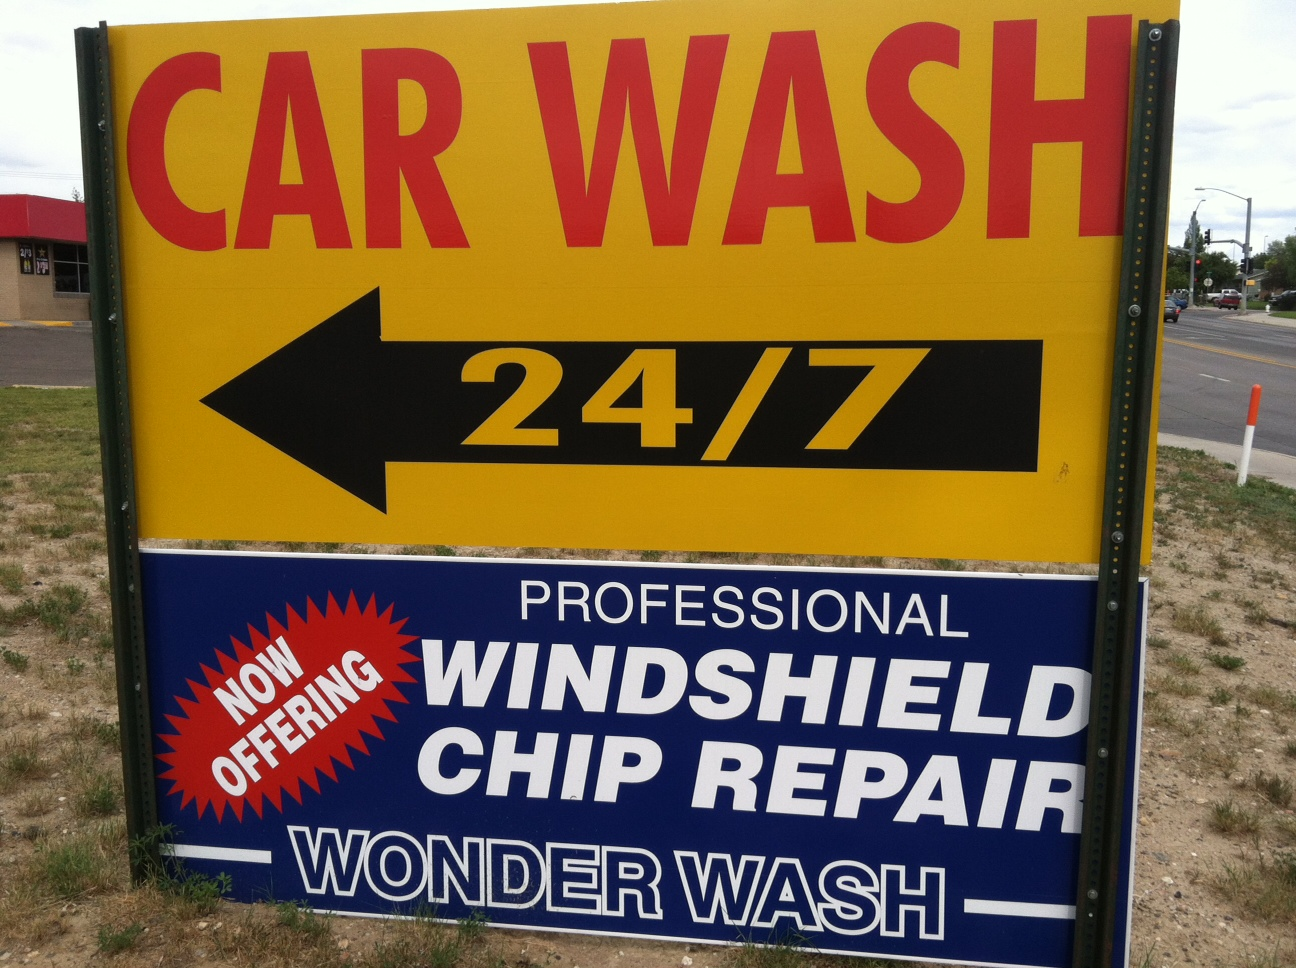 Wonder Wash Car Wash & Windshield Chip Repair